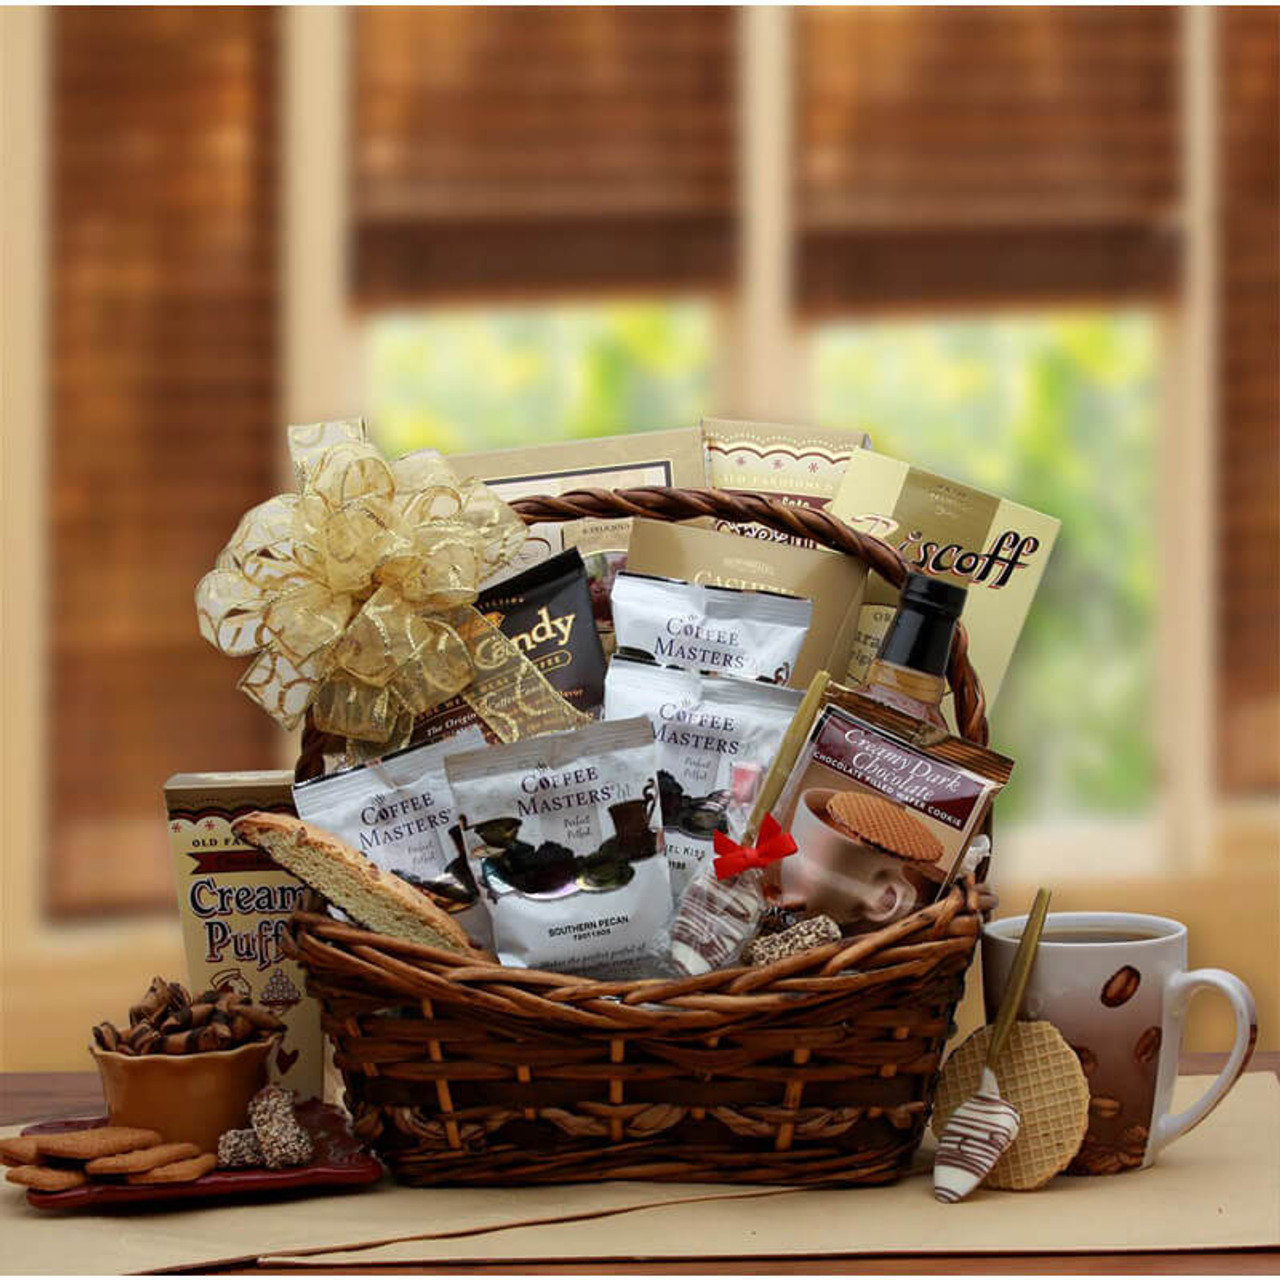 Coffee Time Gift Basket by canterberrygifts.com